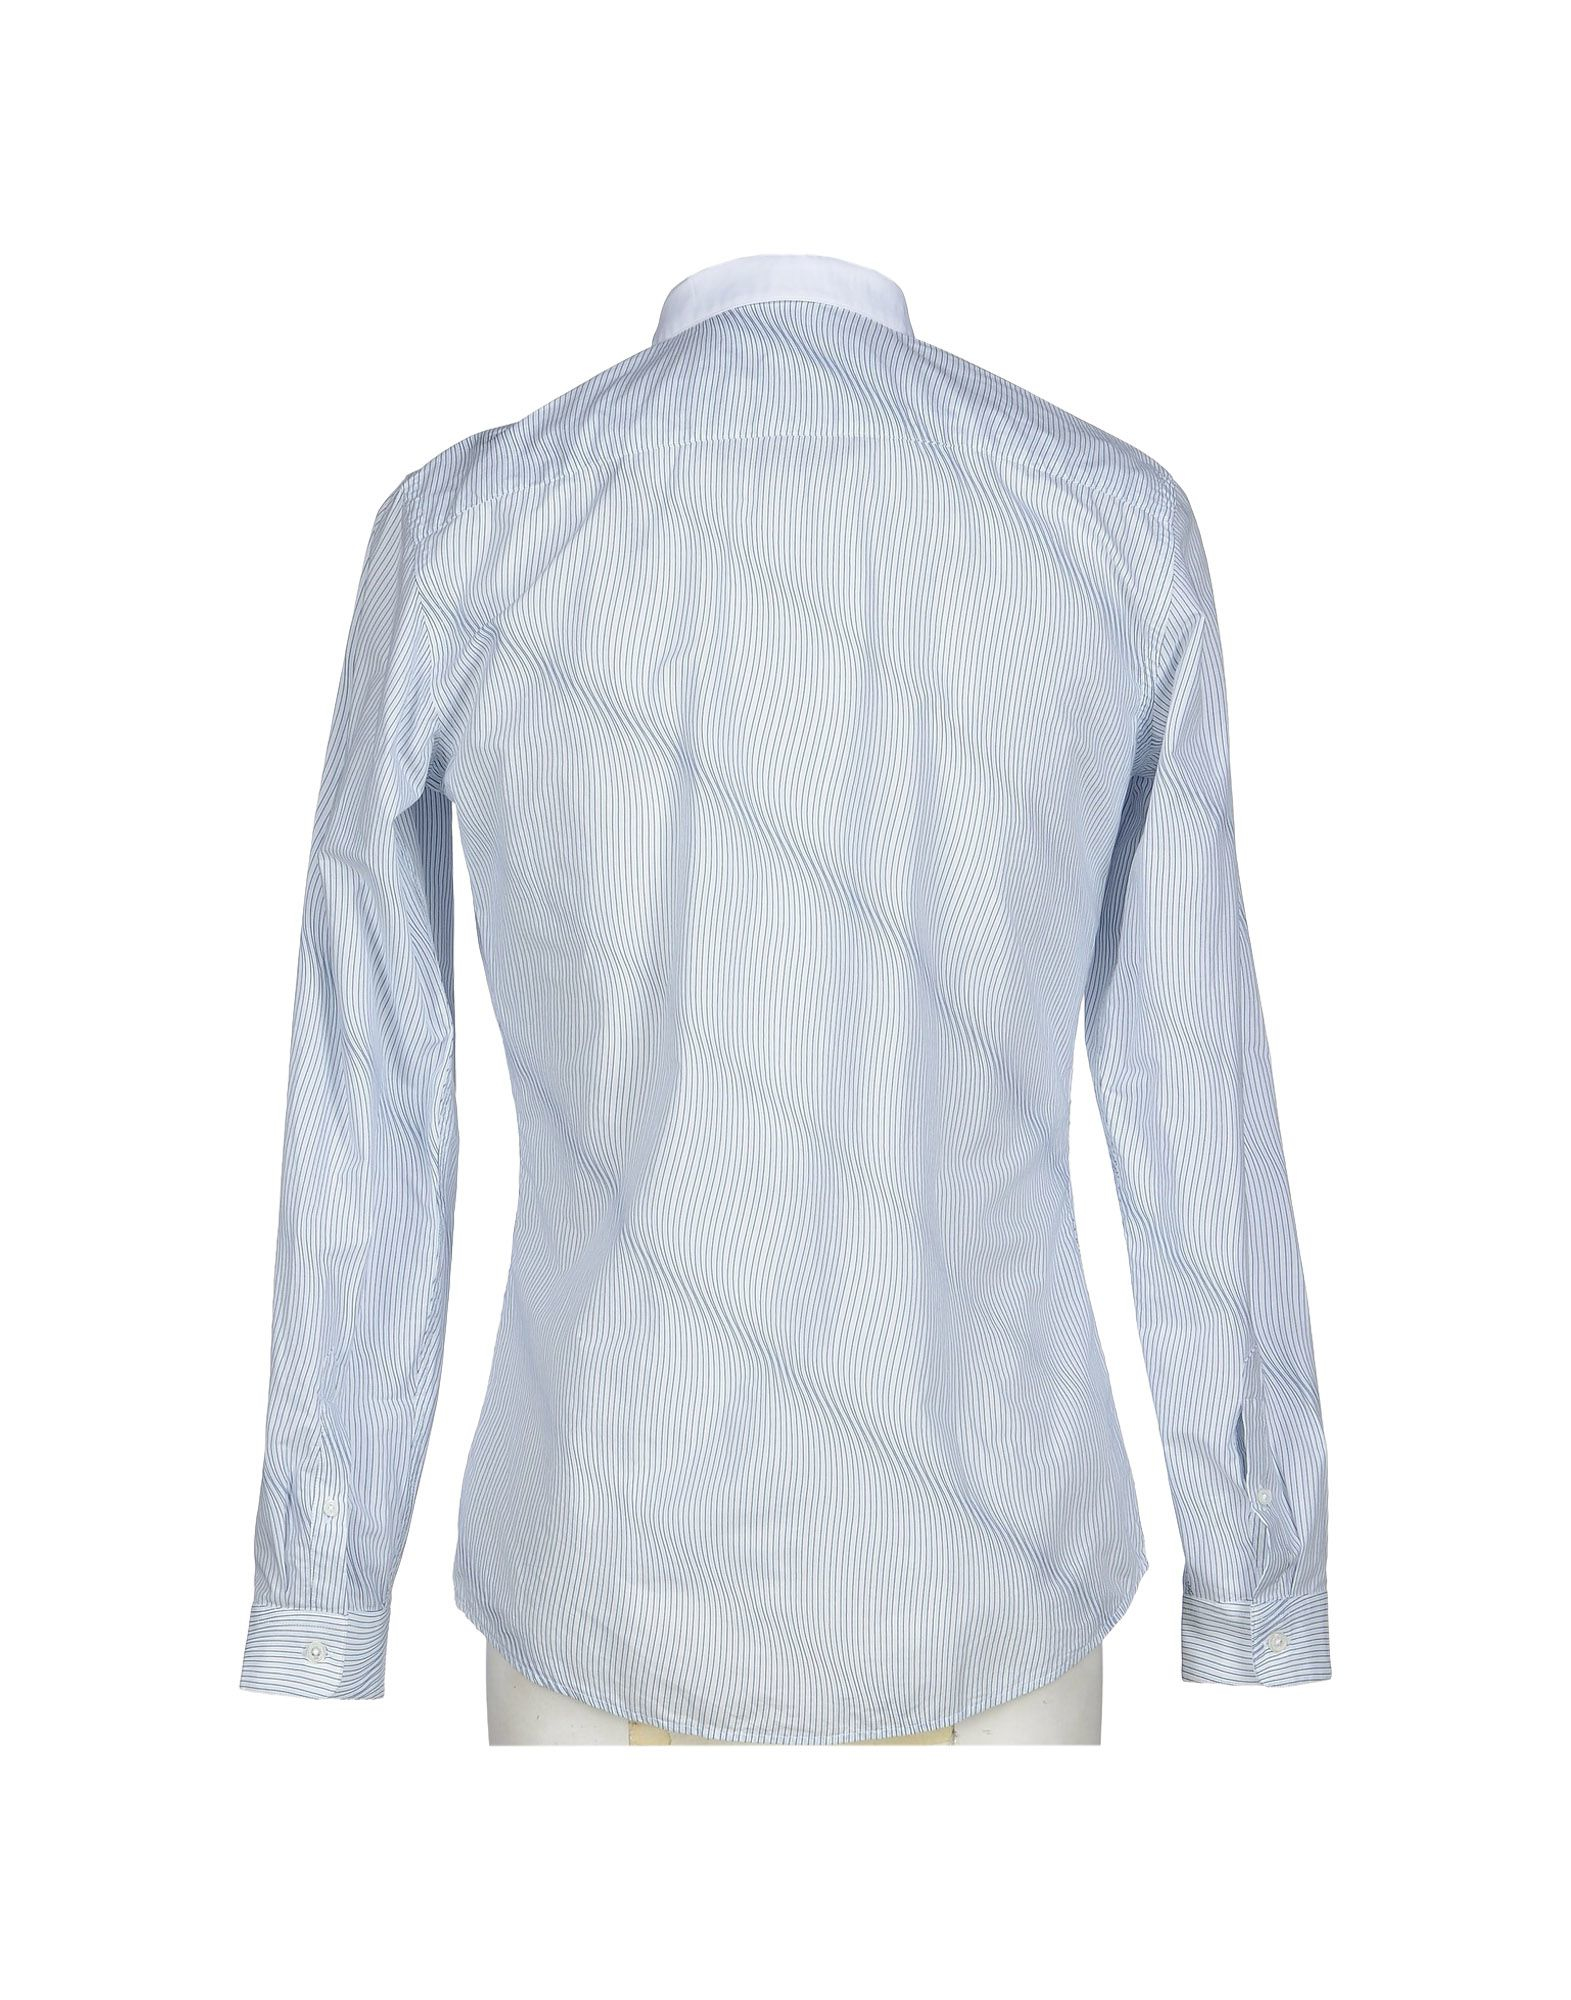 White Embellished Collar Long Sleeve Shirt River Island